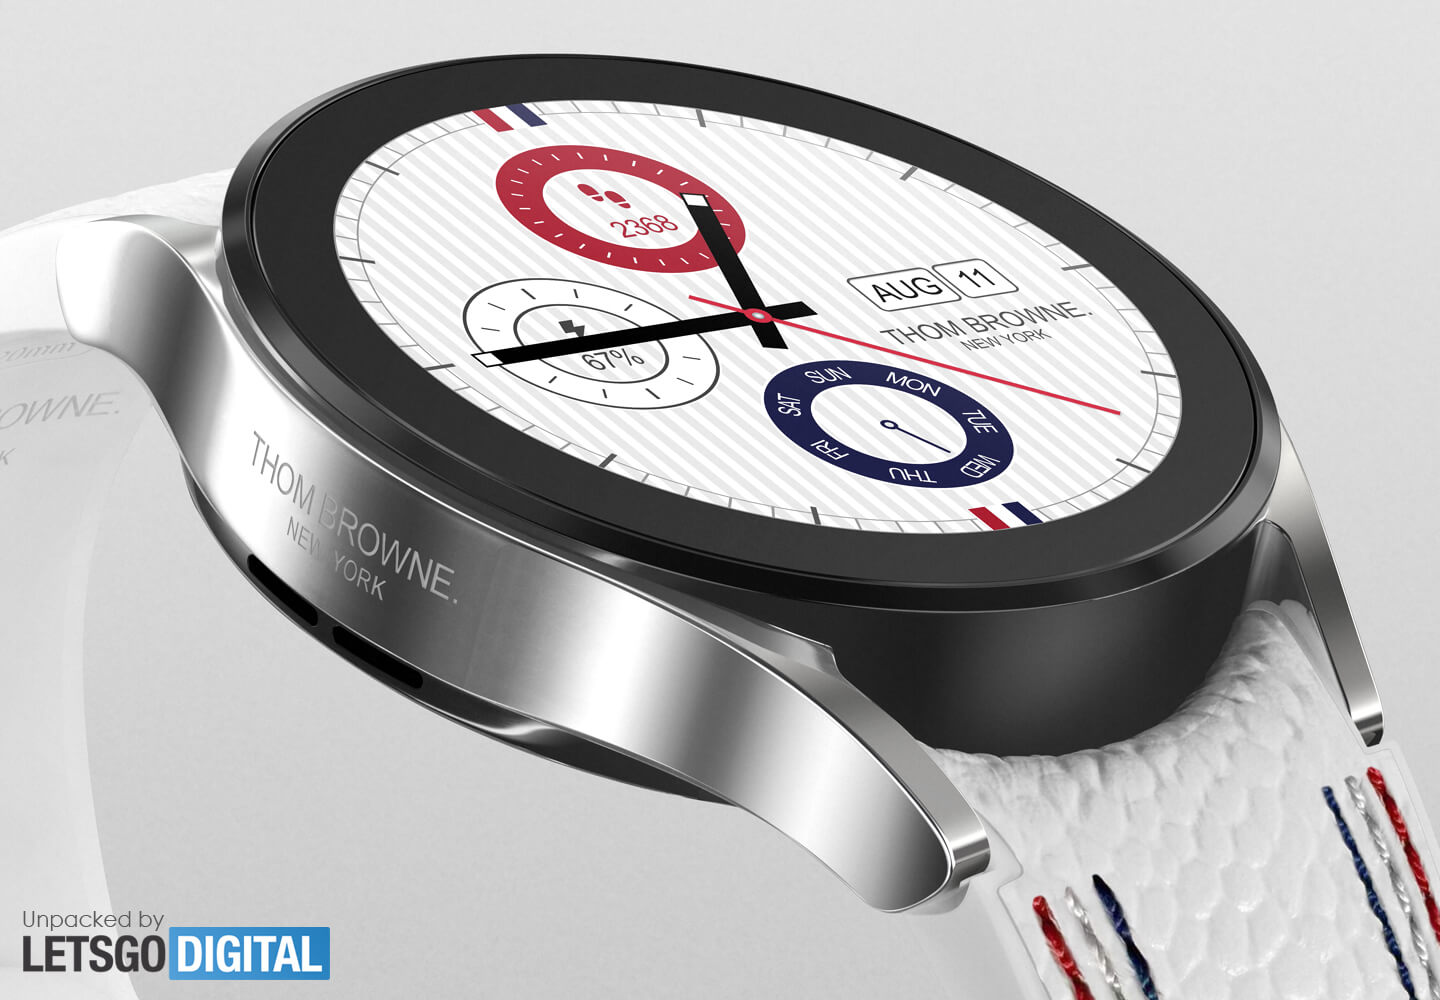 Samsung Galaxy Watch 4 speciale uitgave